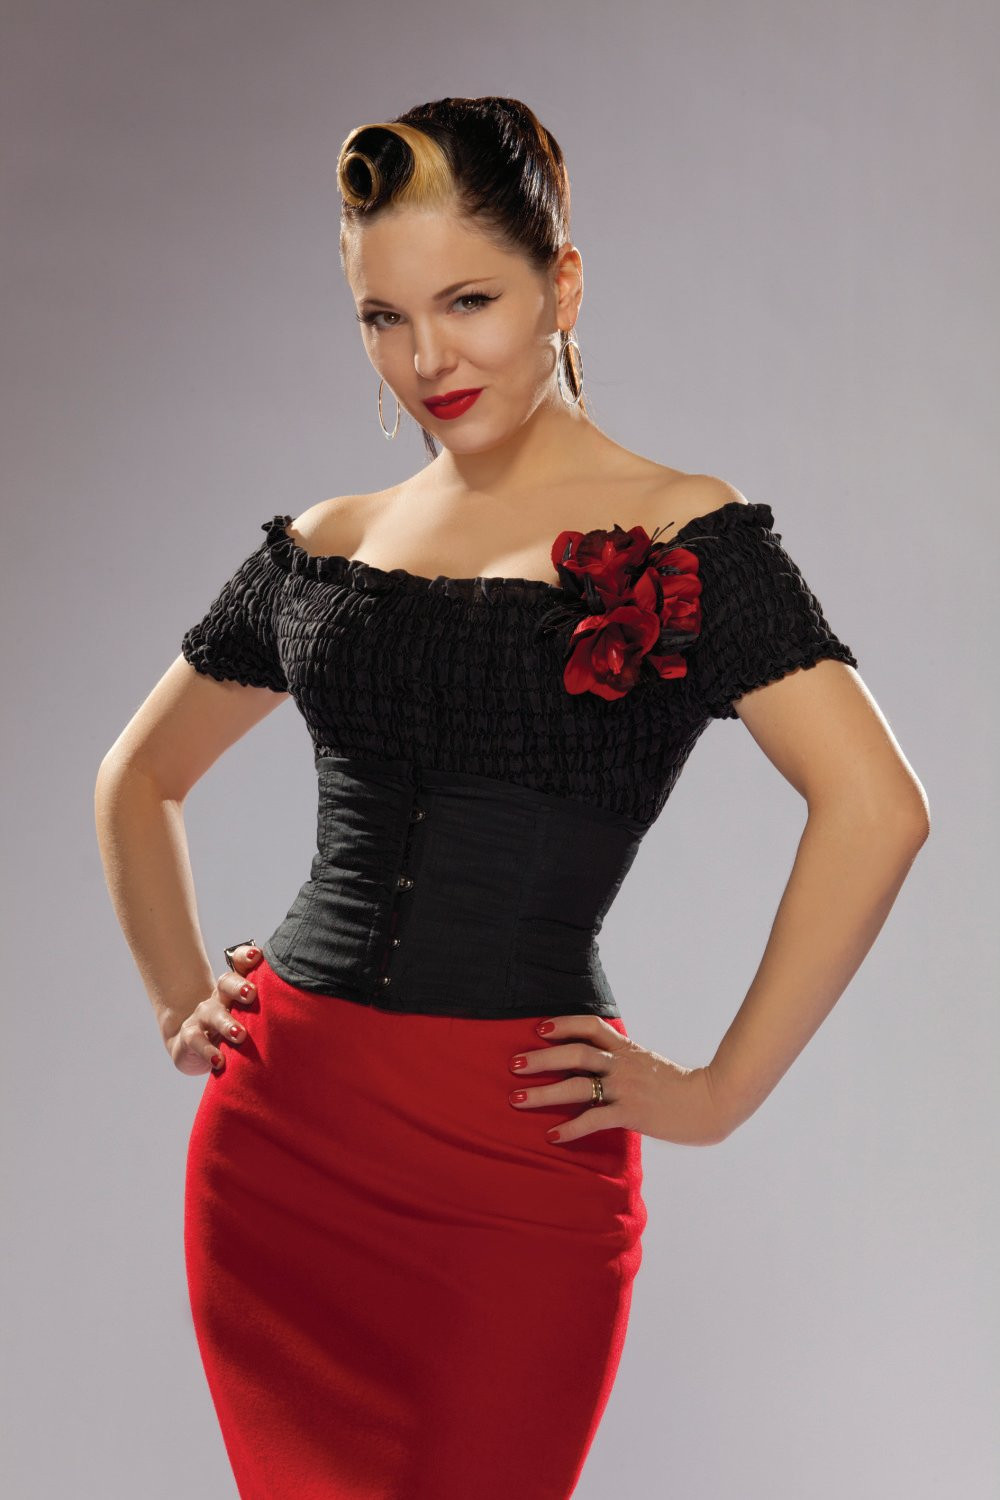 Imelda May upcoming events